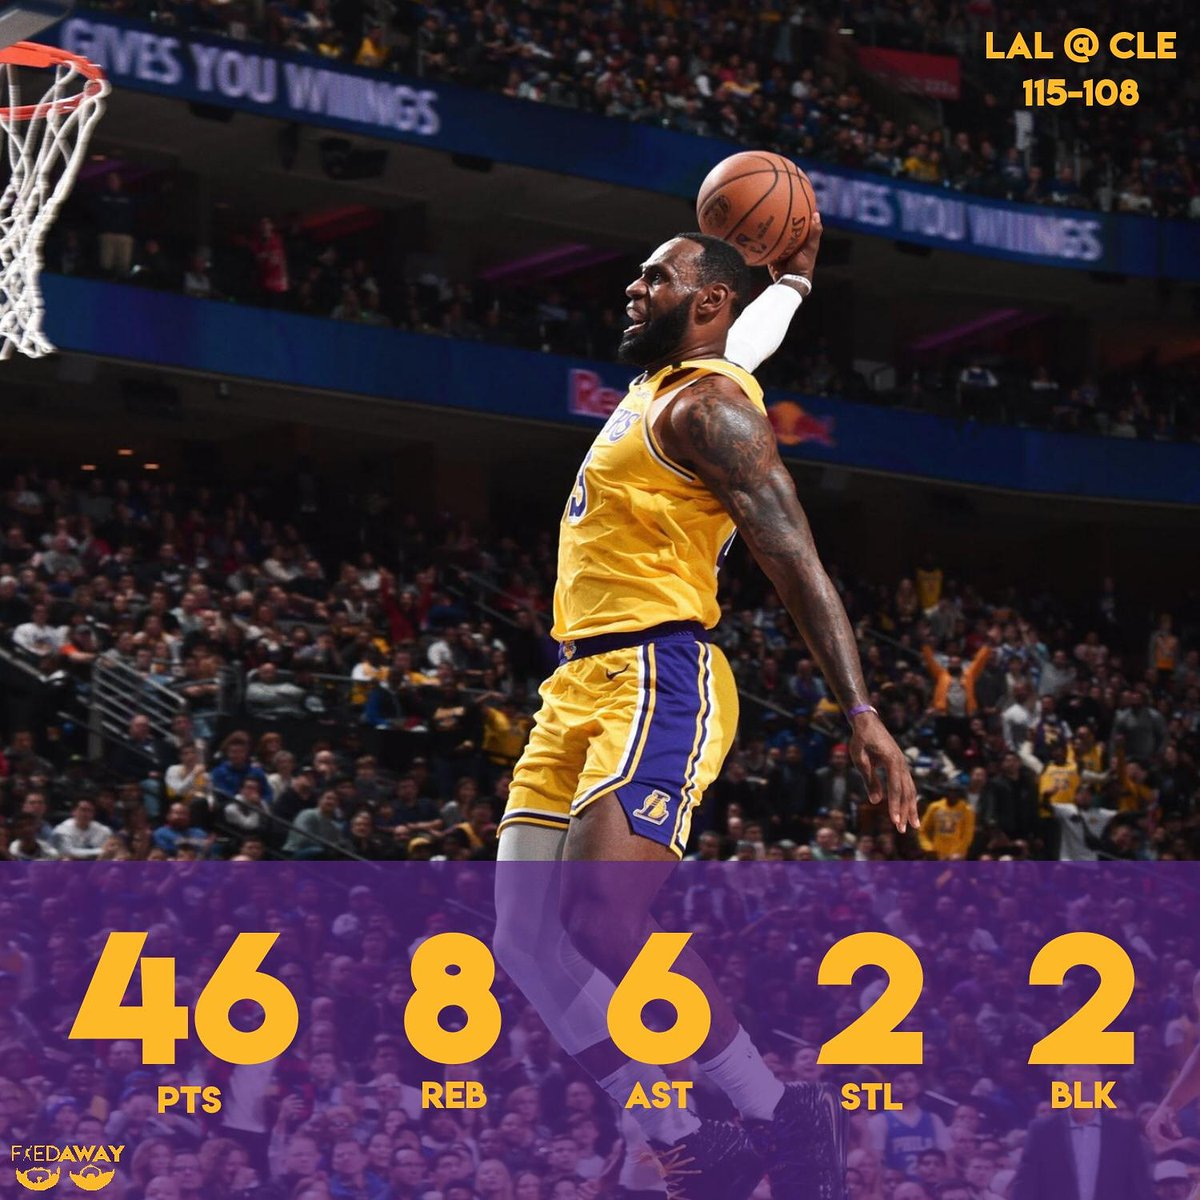 The King comes home in Royal fashion tonight, sticking his home town with damn near 50! The Lakers continue to roll, improving to 10-0 on the road.   Is LeBron making an MVP case?  #nba #LakeShow #NBATwitter